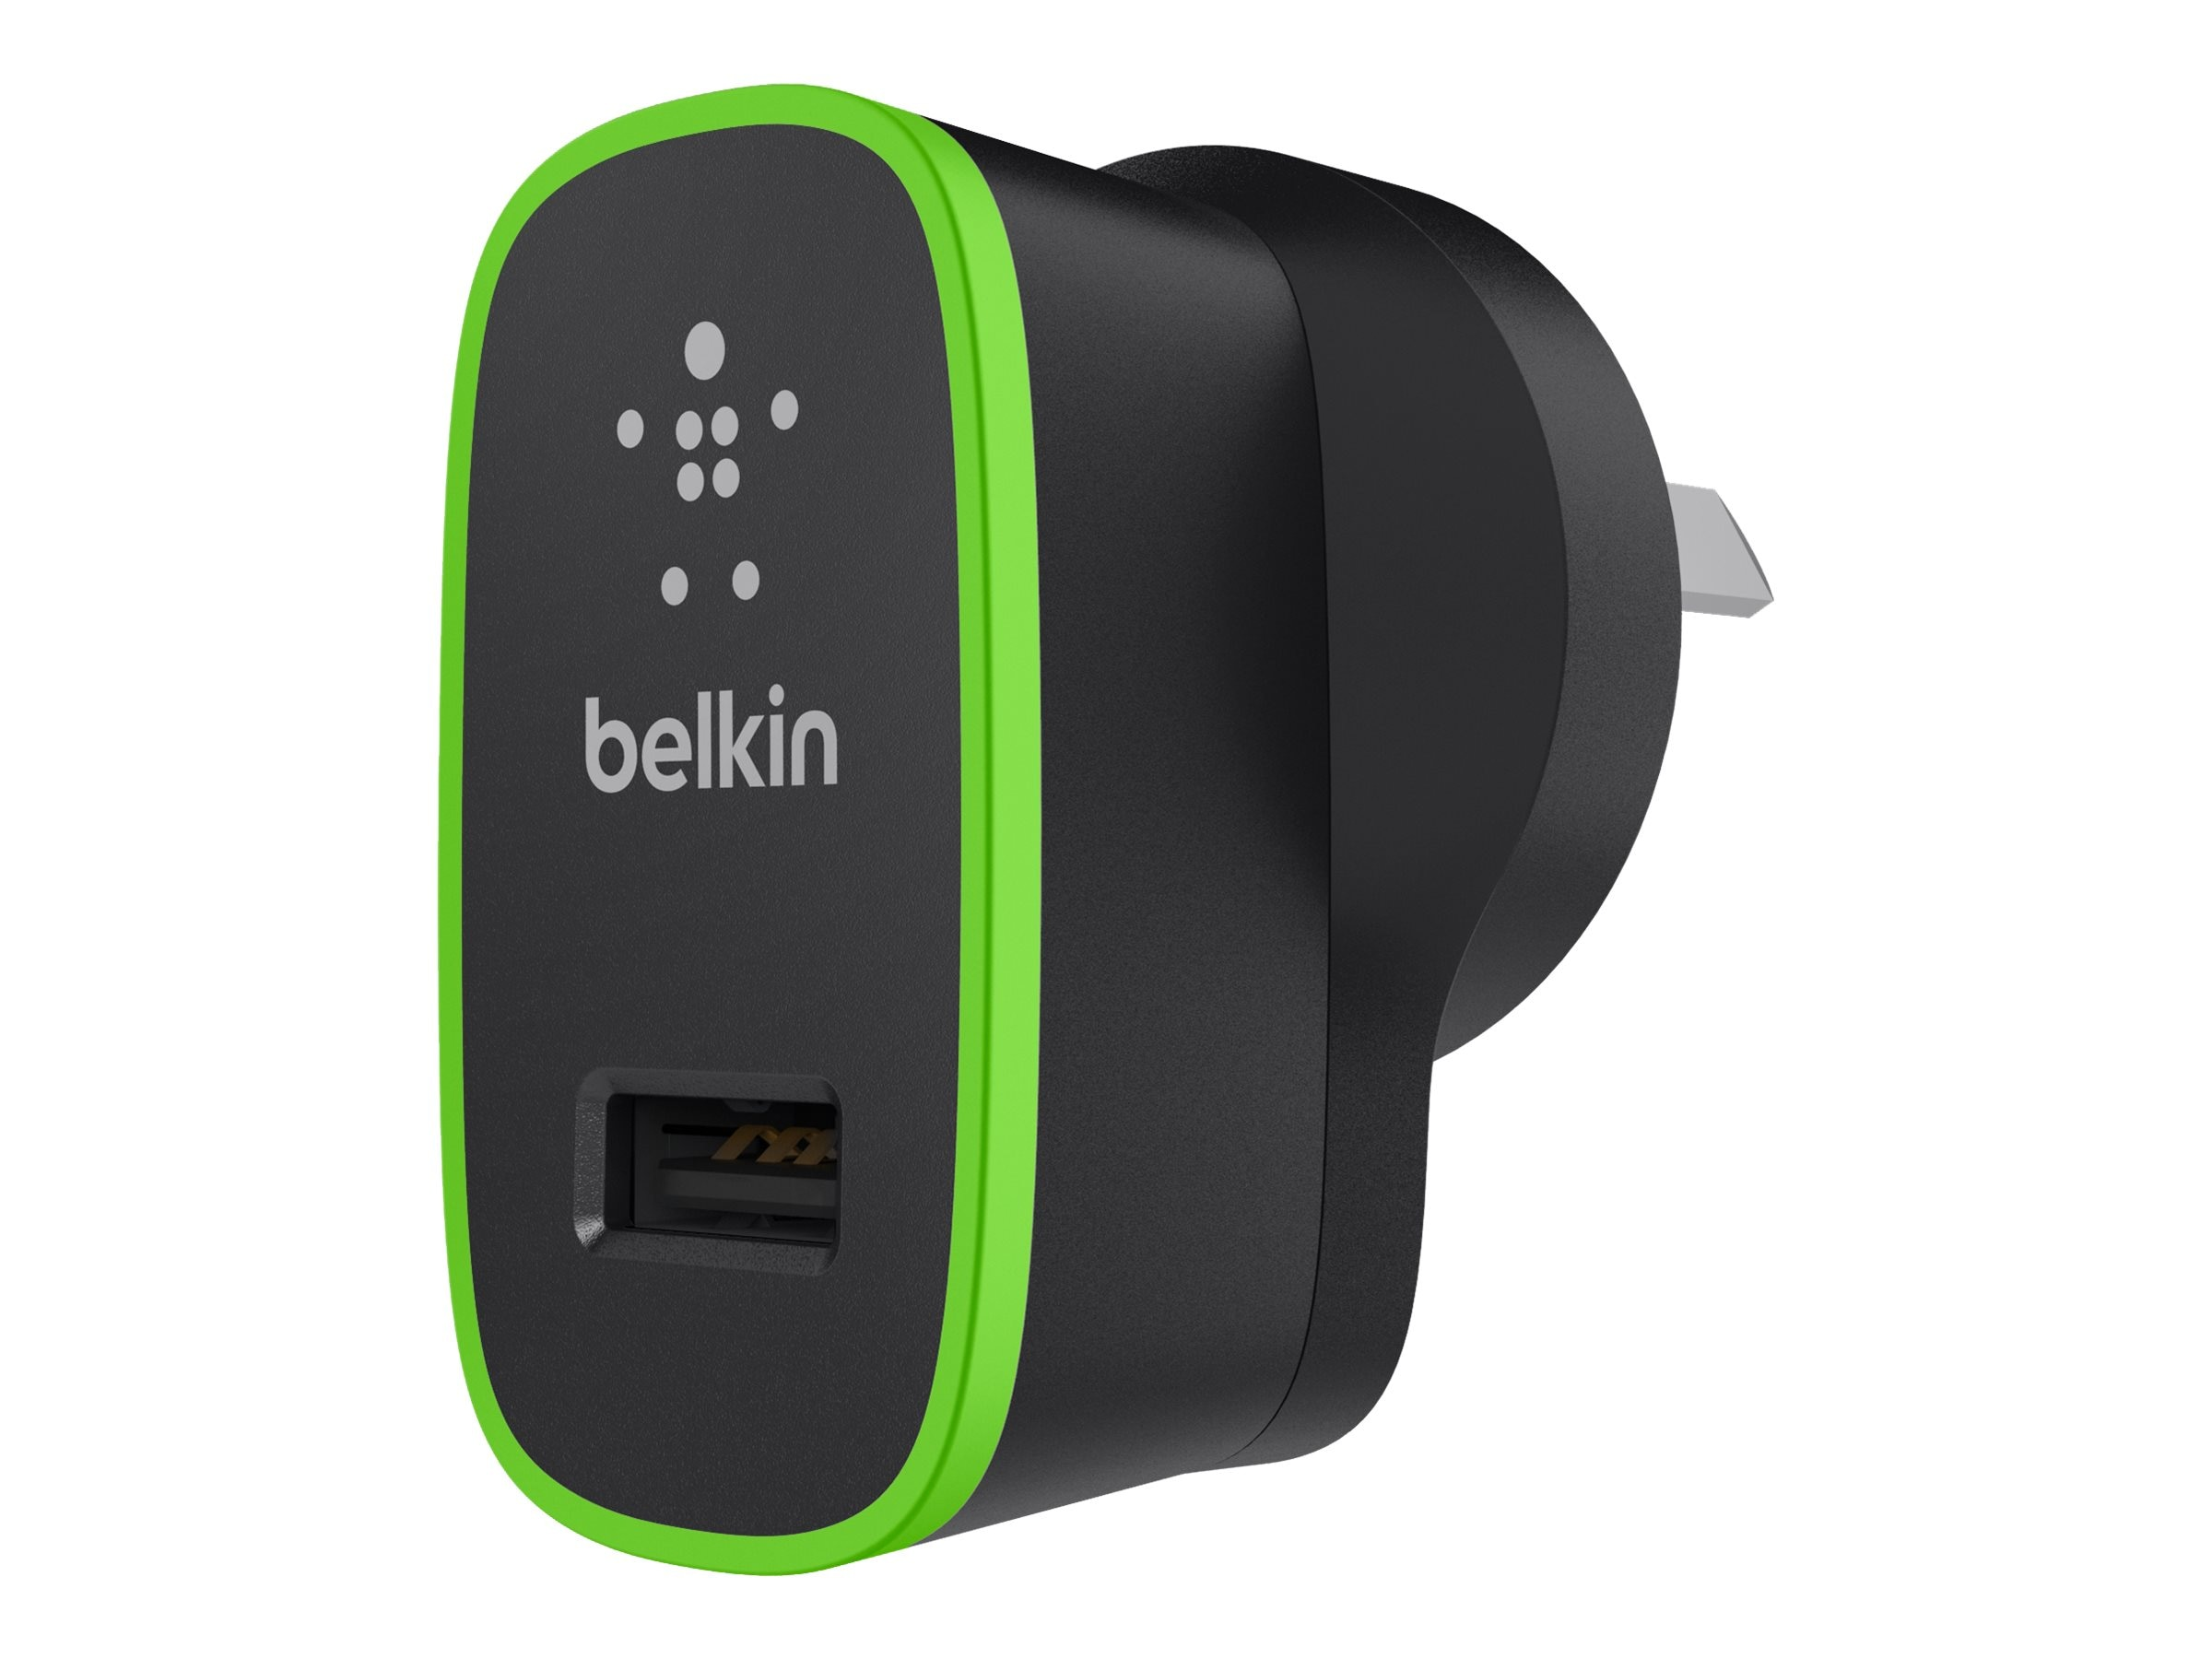 Belkin Home Charger 5V 2.1 Amp, Black w  Green Accent